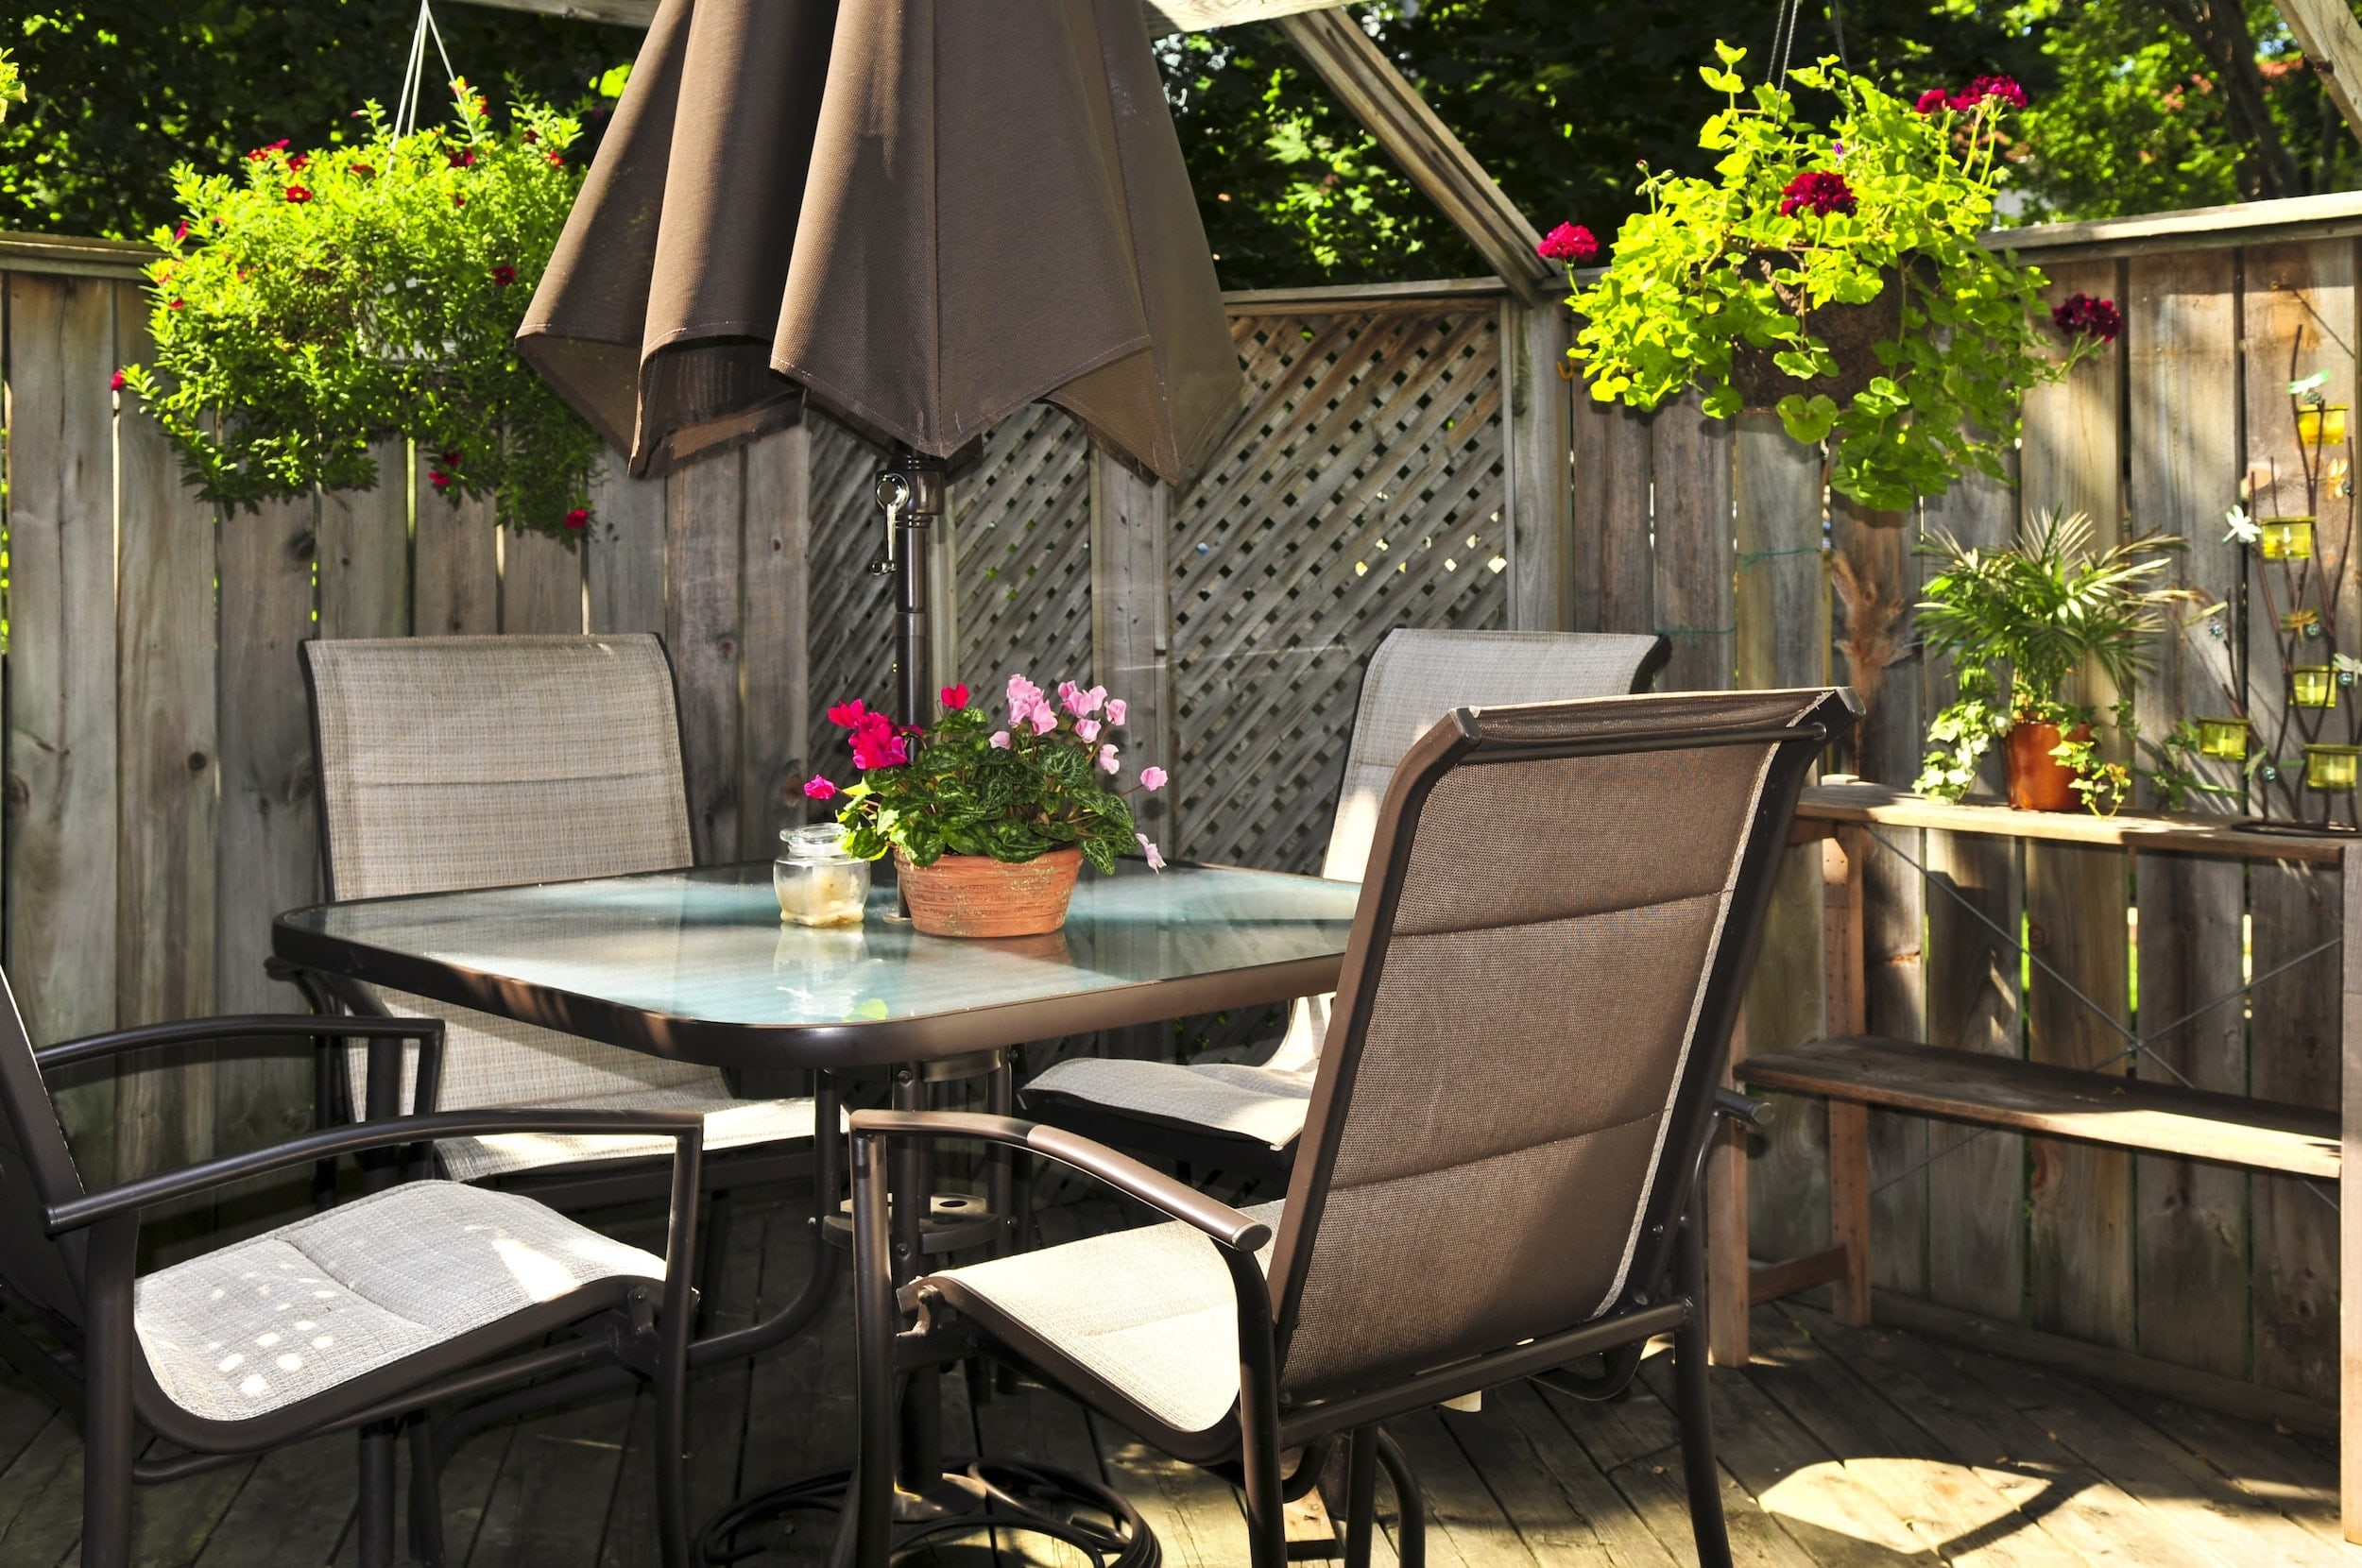 The Top Patio Furniture Trends for 2018